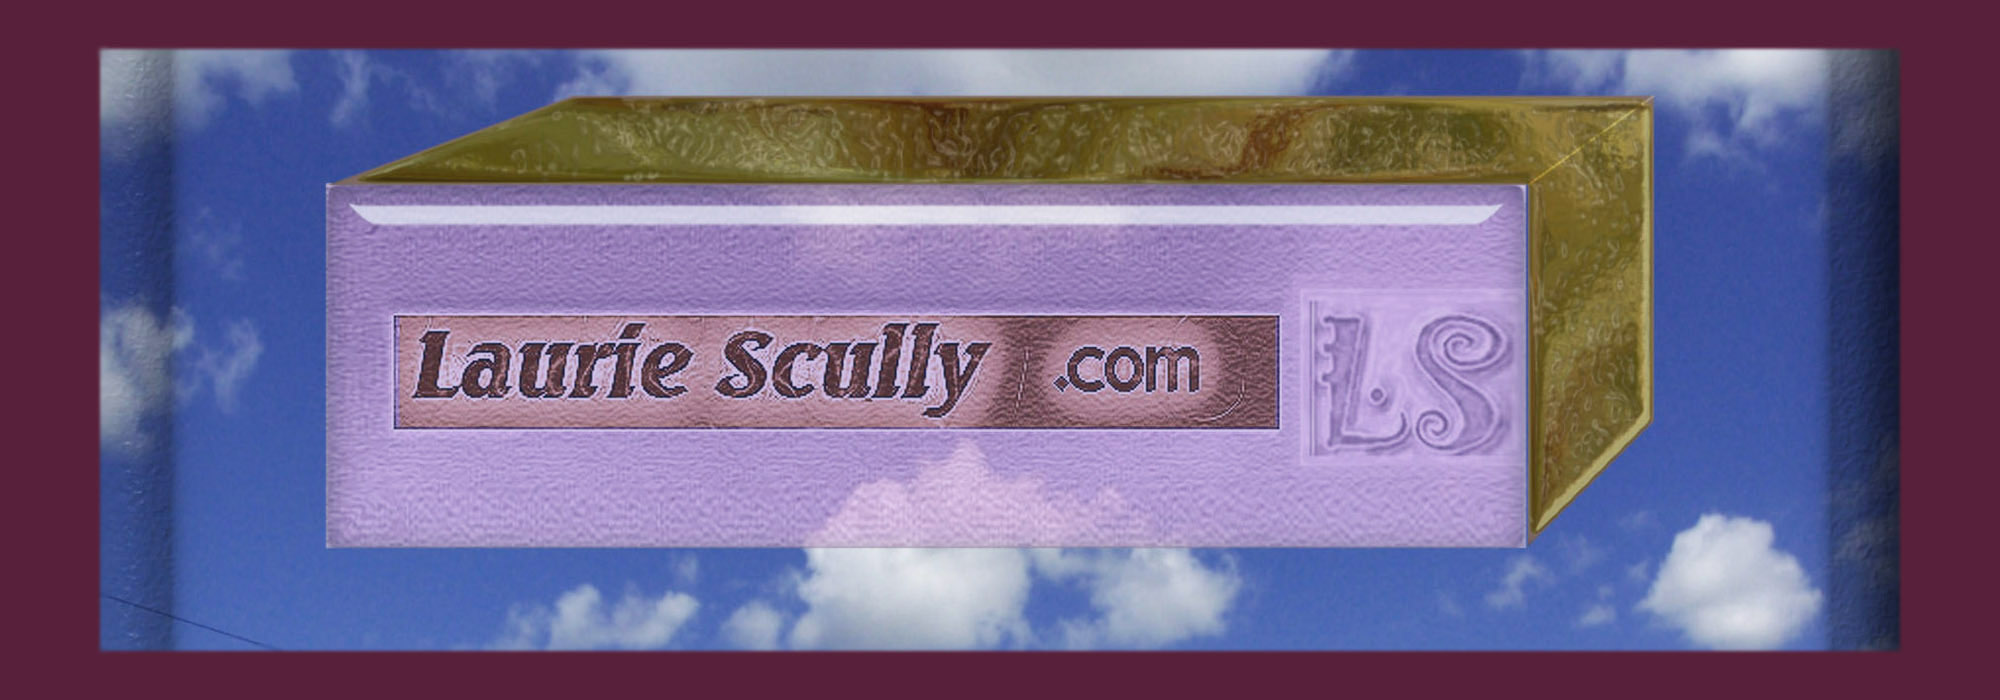 Laurie Scully  .com